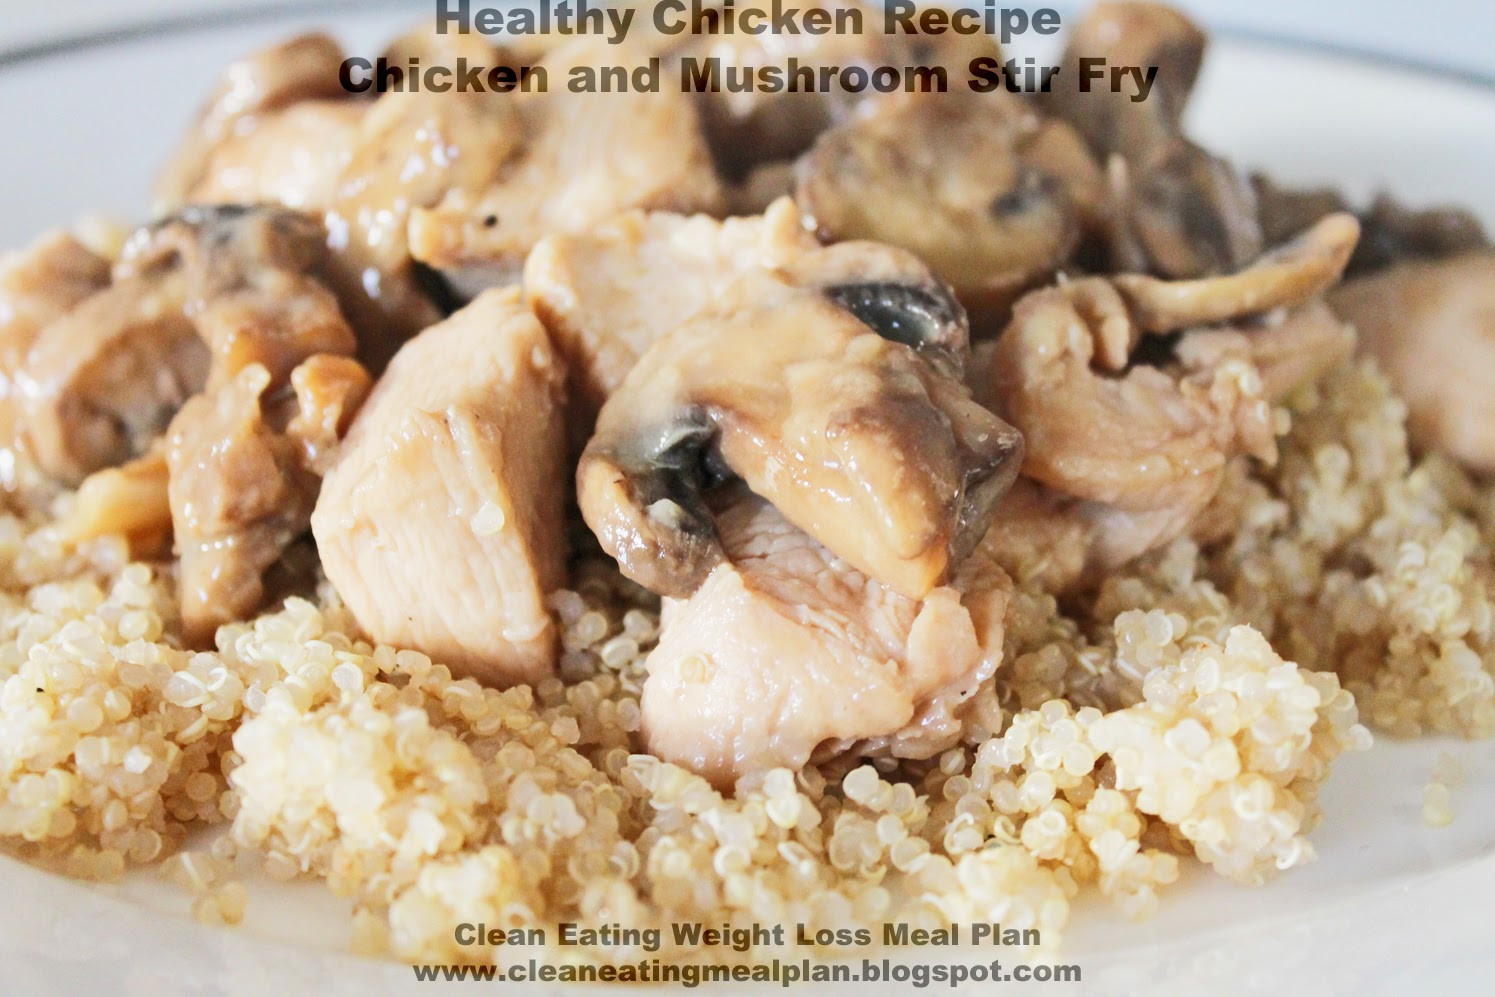 Healthy Mushroom Recipes For Weight Loss  Healthy Chicken Recipe Chicken and Mushroom Stir Fry